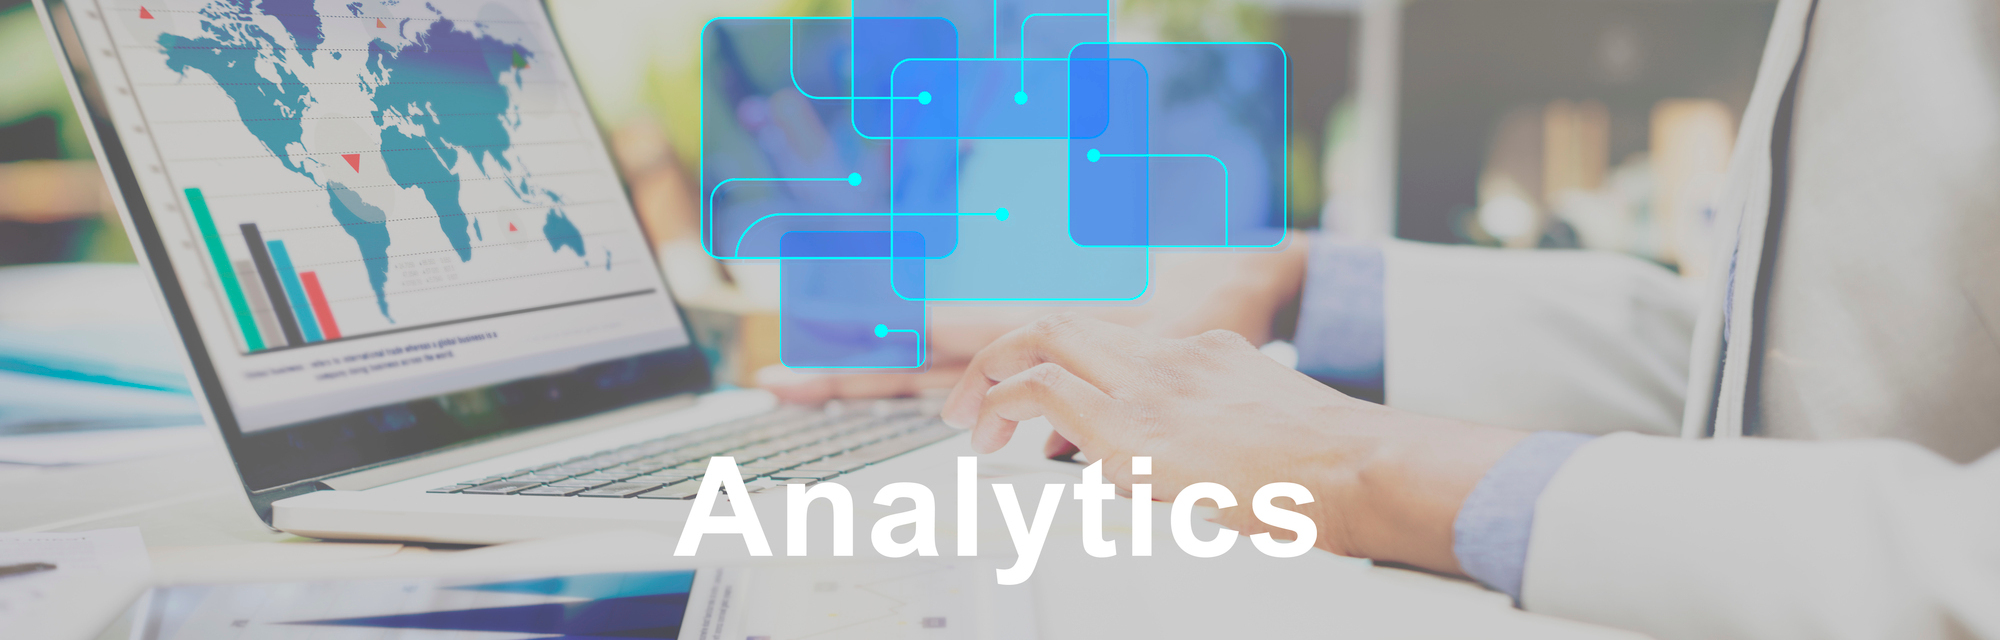 Analytics Data Analysis Information Internet Concept